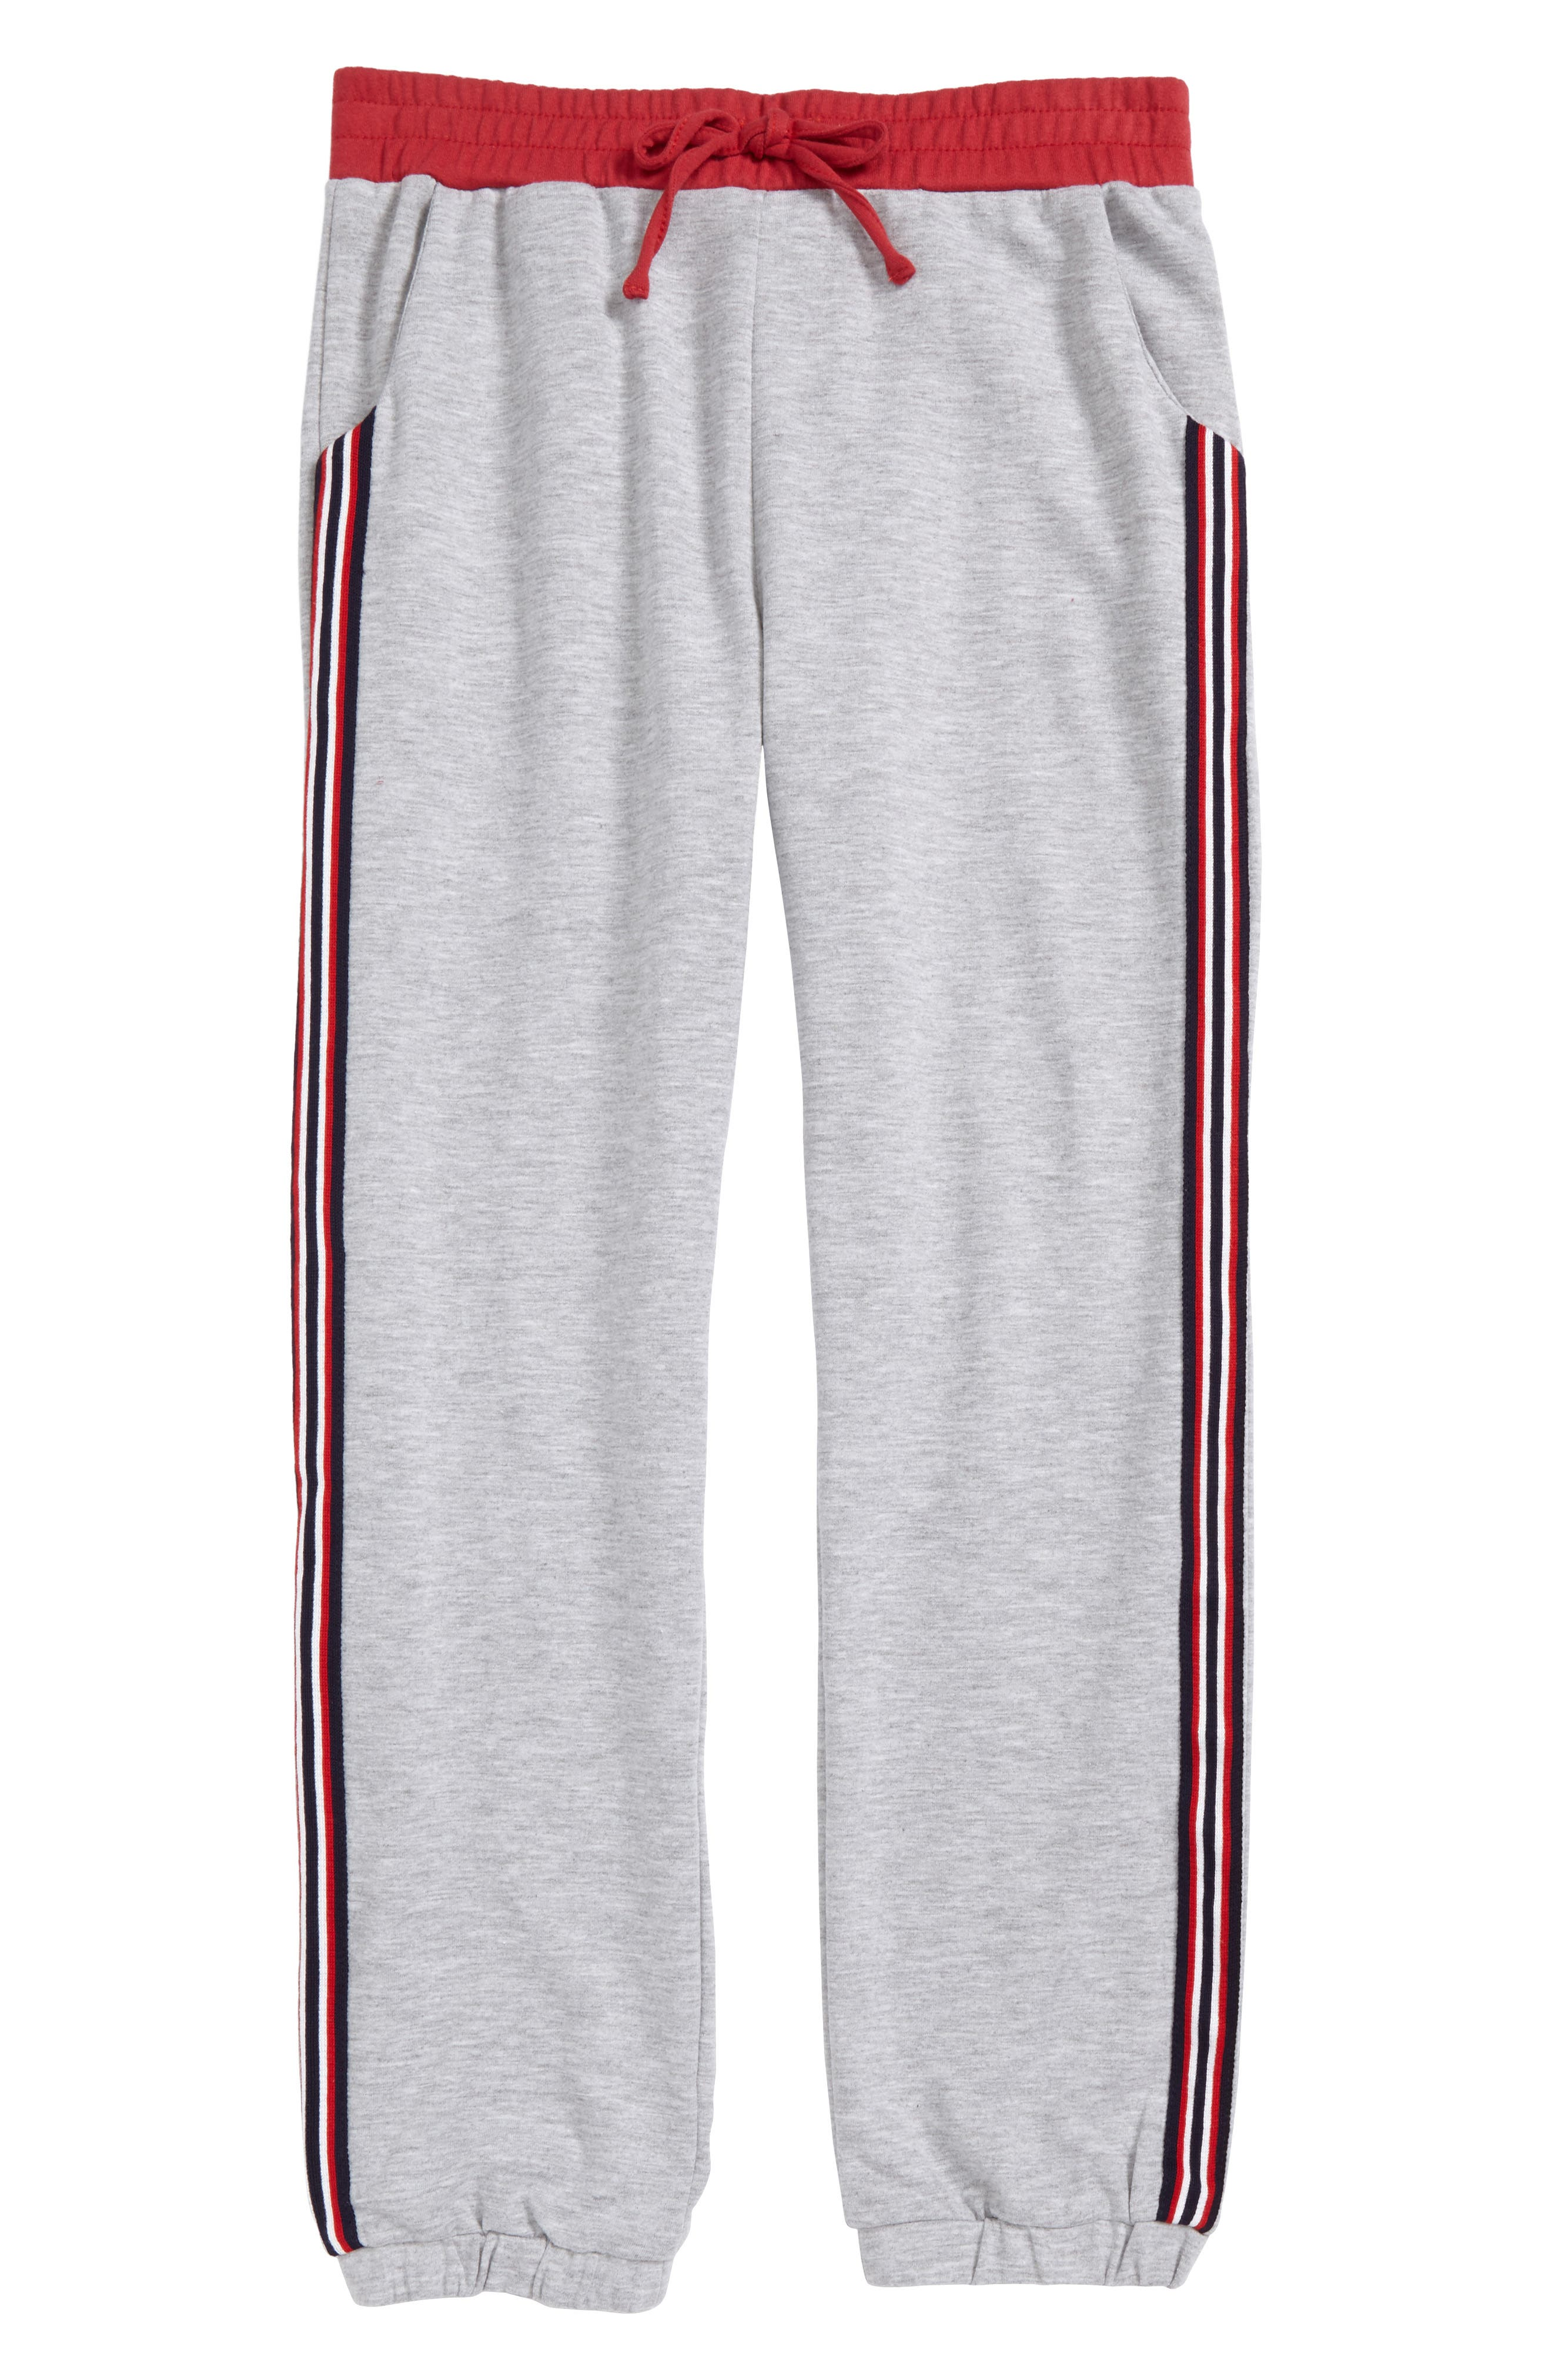 Side Stripe Sweatpants,                             Main thumbnail 1, color,                             Heather Grey/ Red